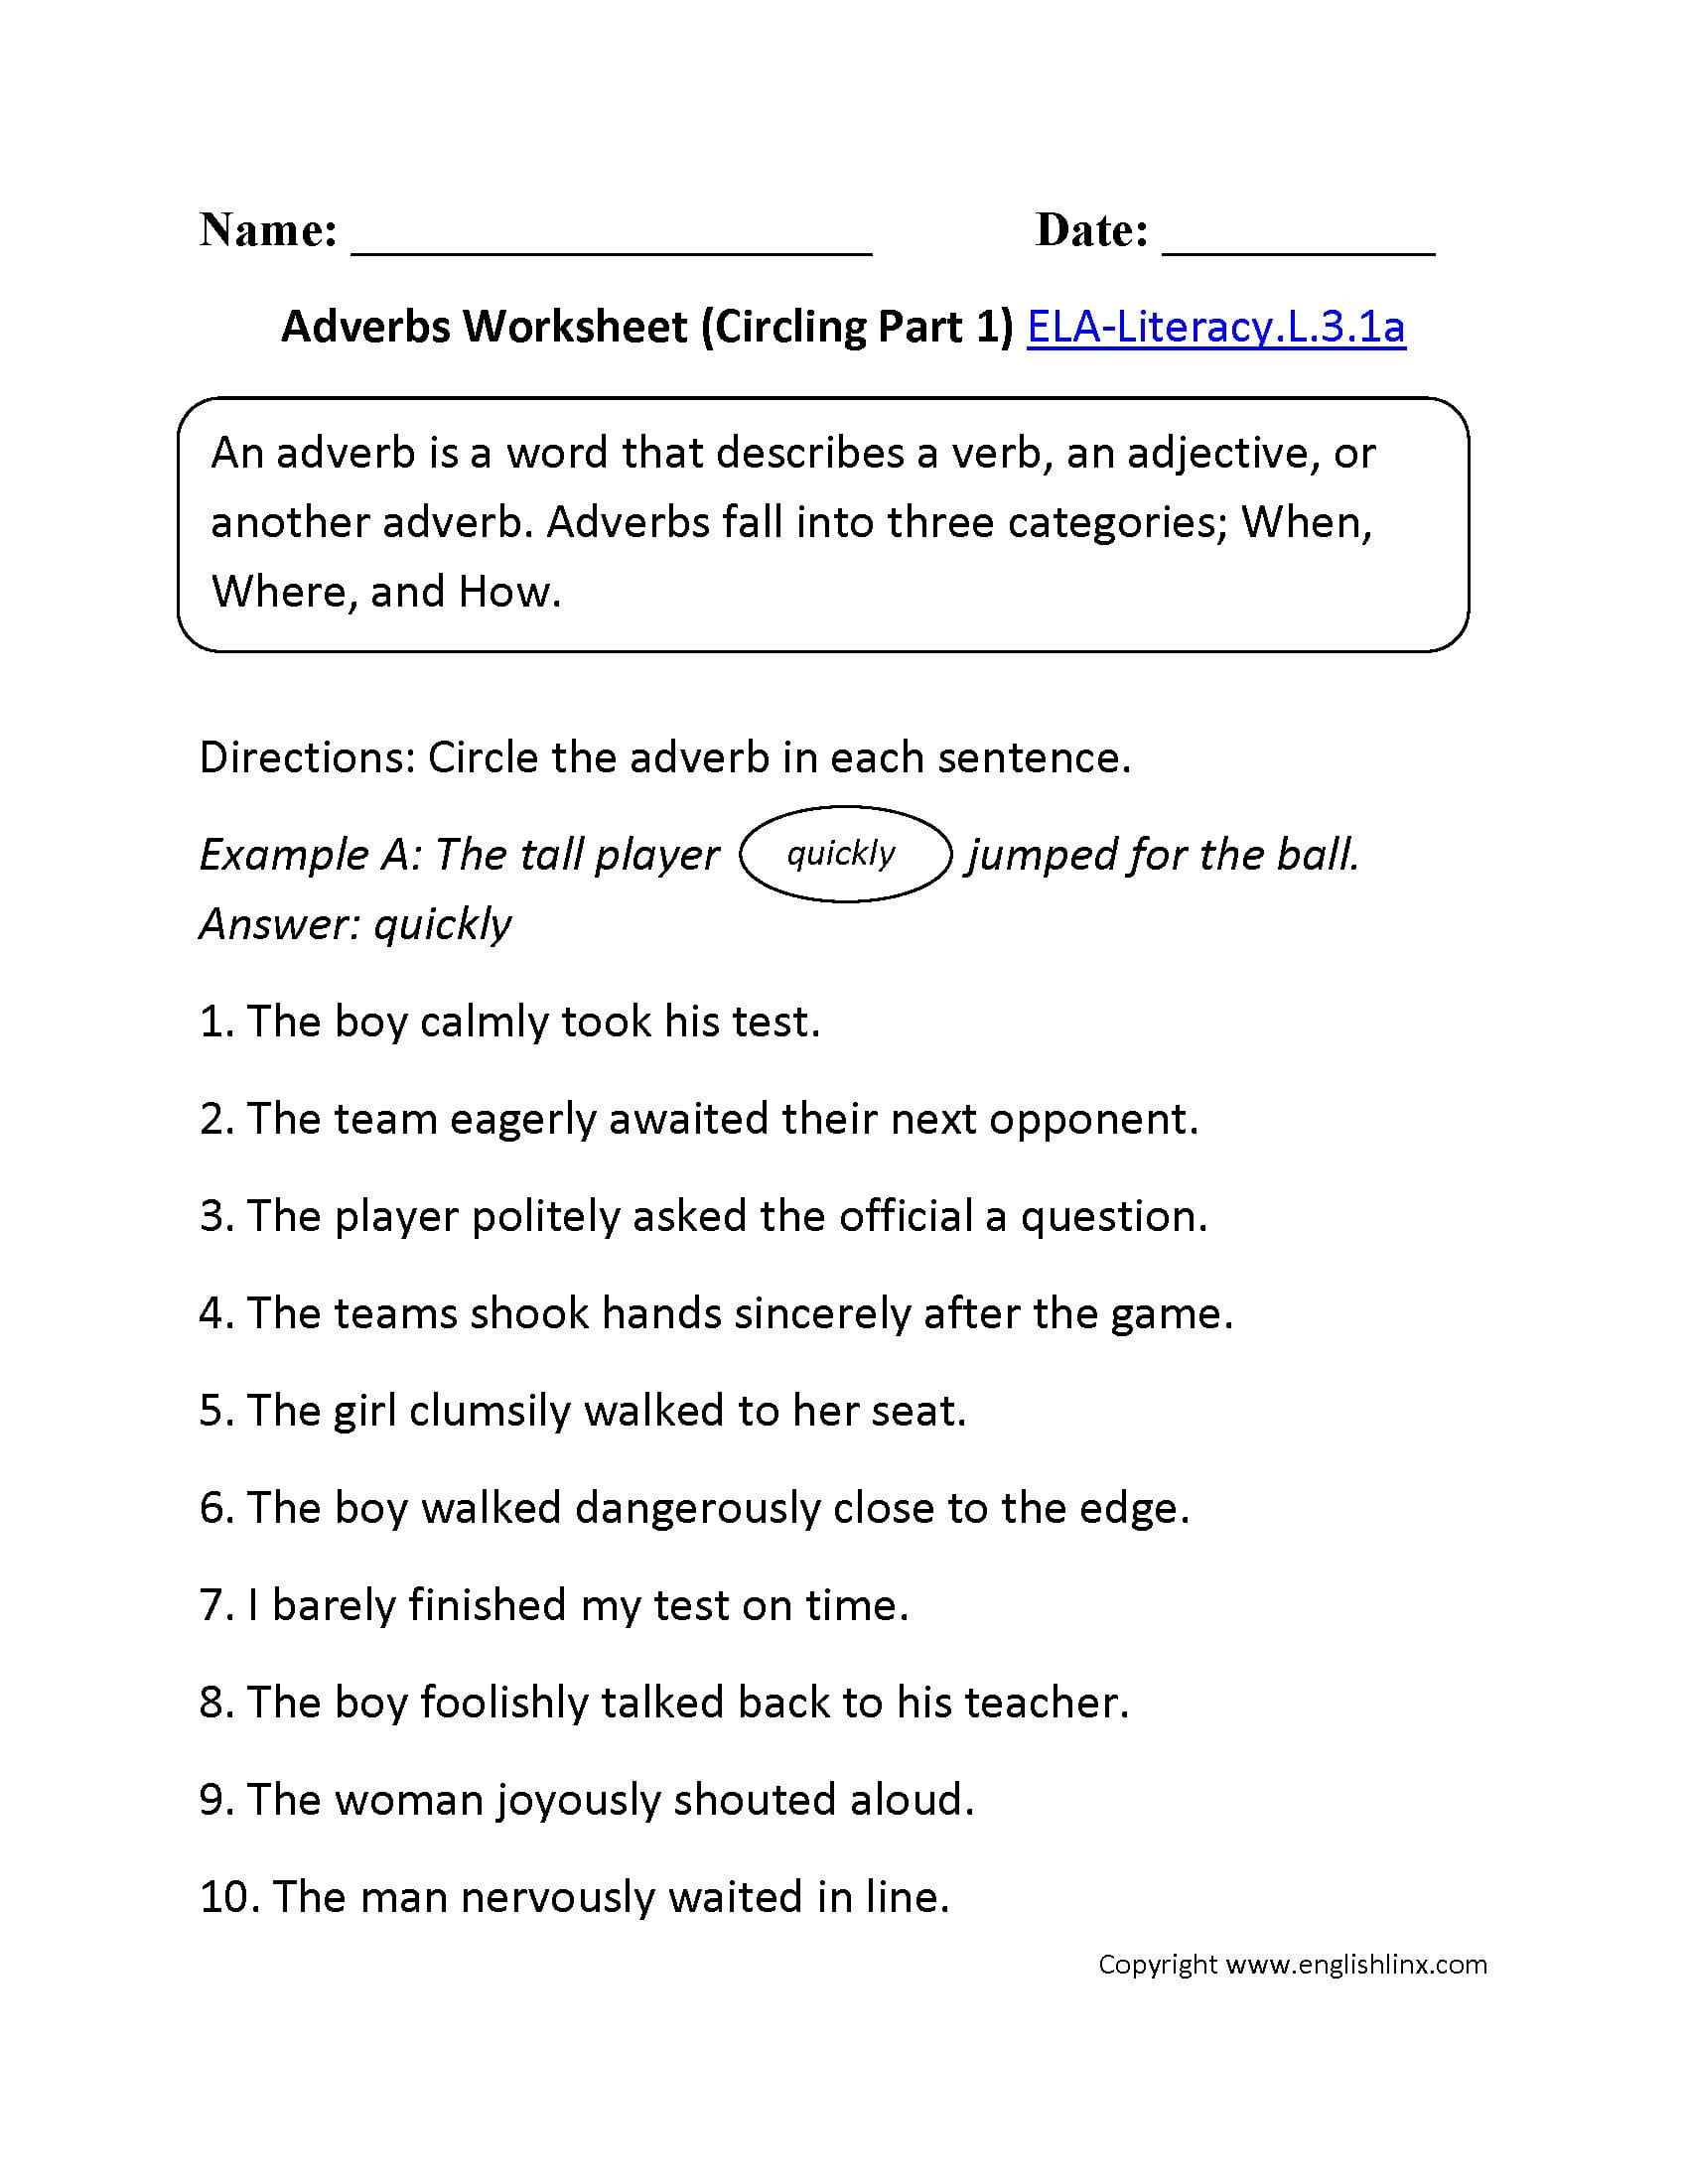 4th Grade Adverb Worksheets 5th Grade Adverb Worksheets to Print